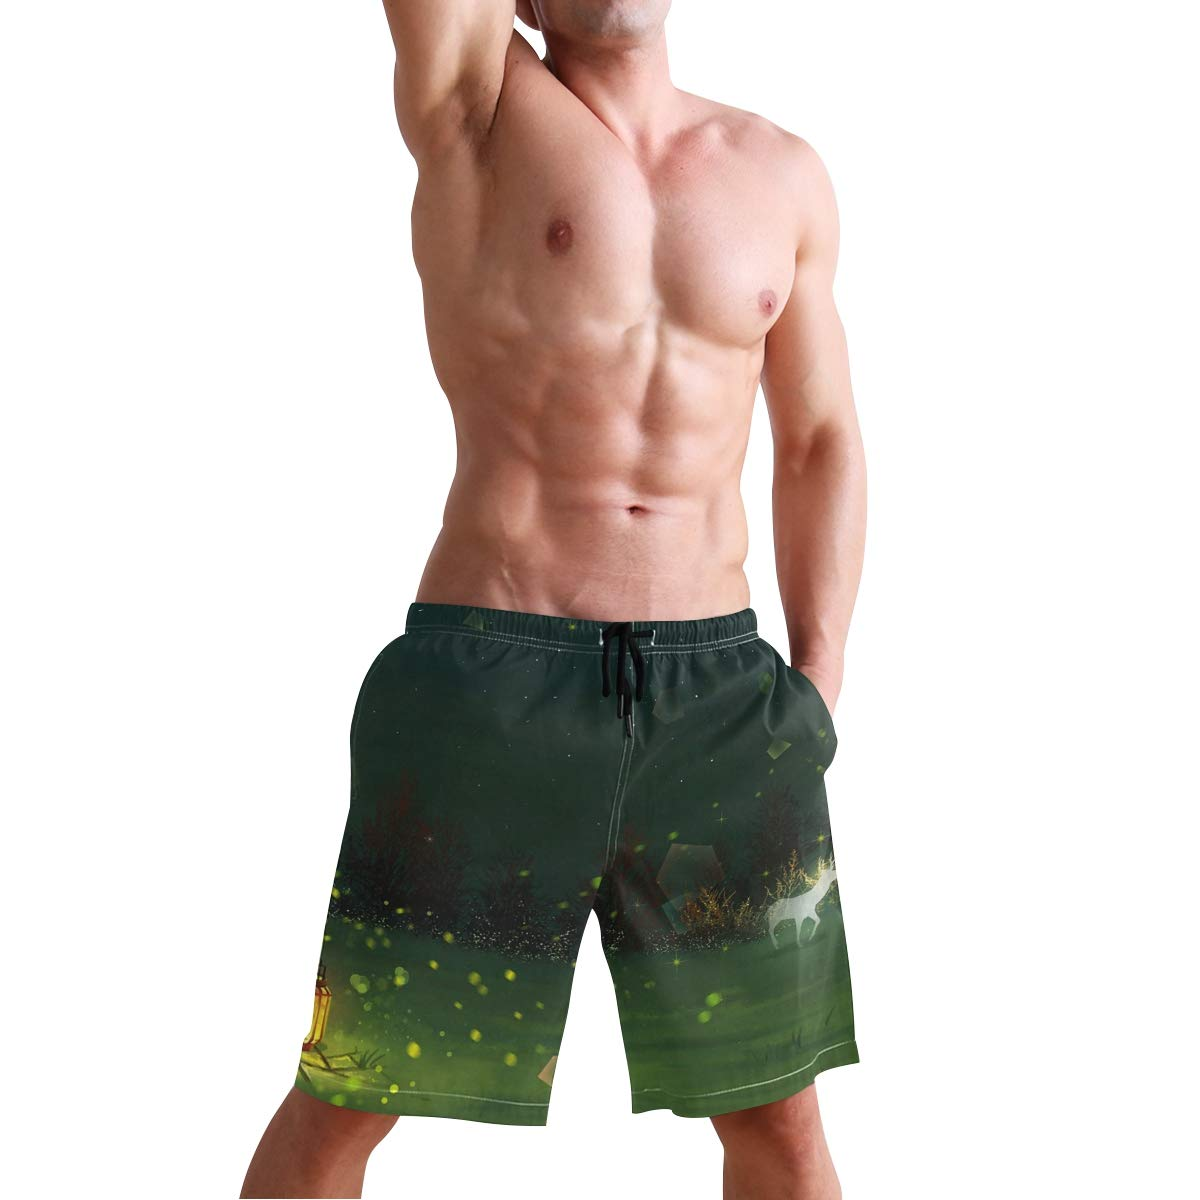 Mens Swim Trunks Quick Dry Beach Shorts with Mesh Lining Magic Deers with Light